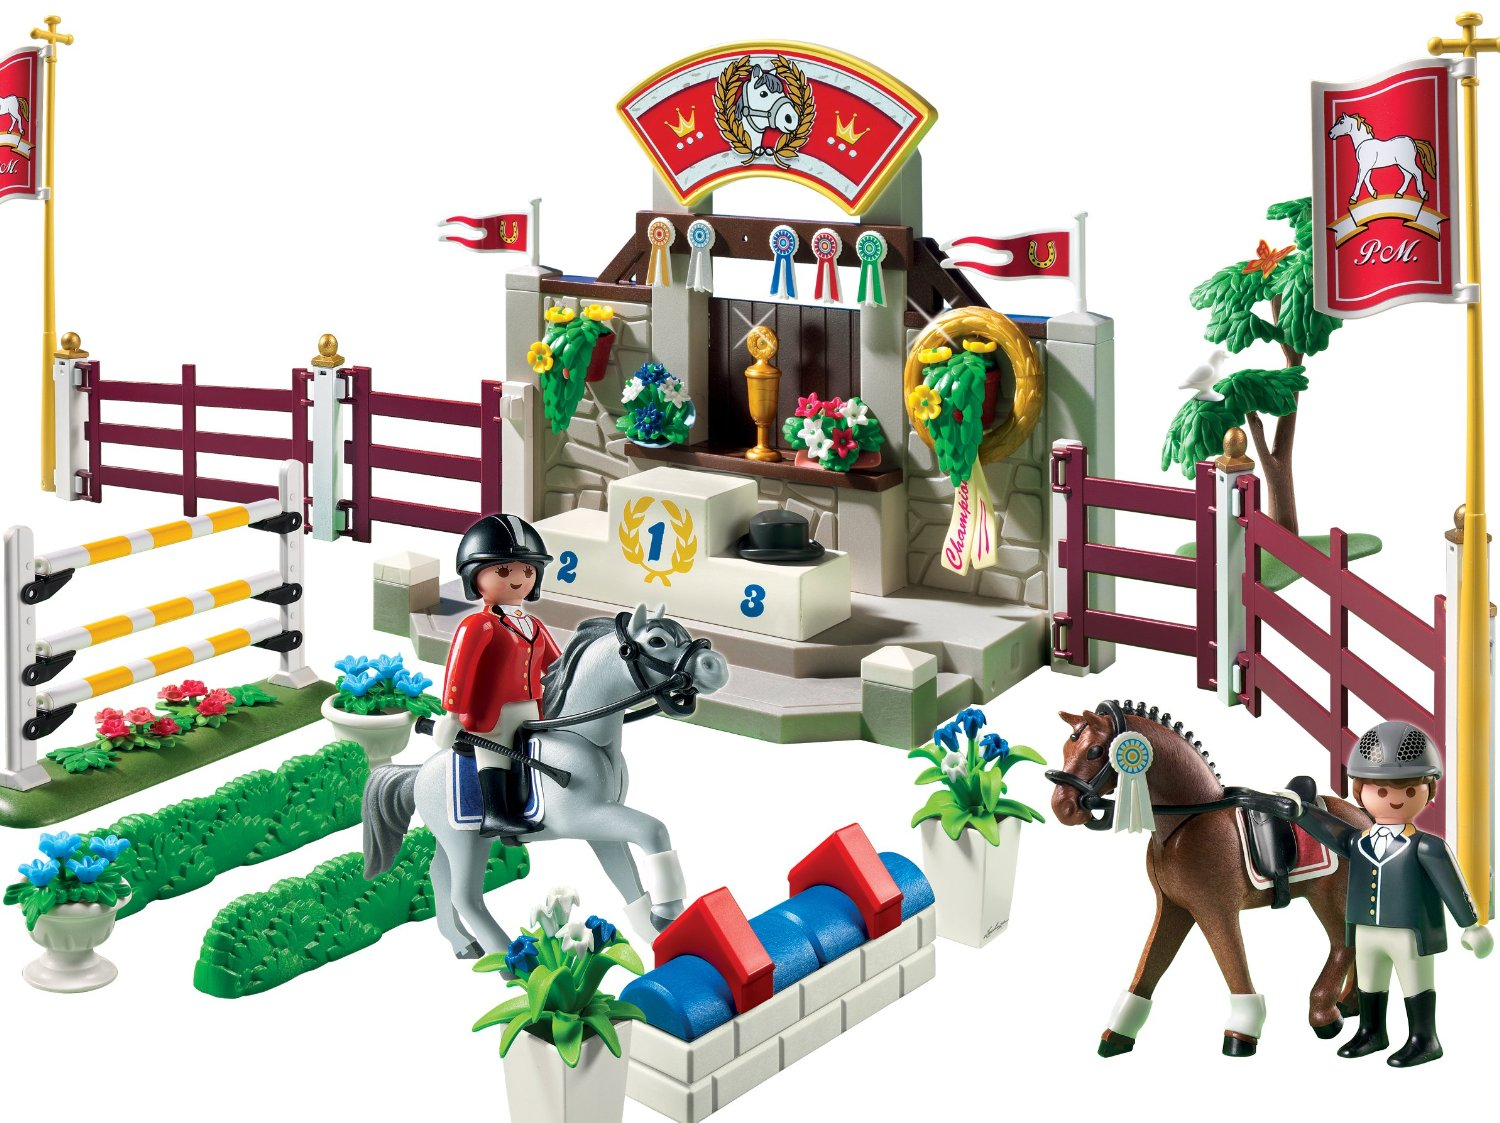 0601: Playmobil Country Horse Show 5224